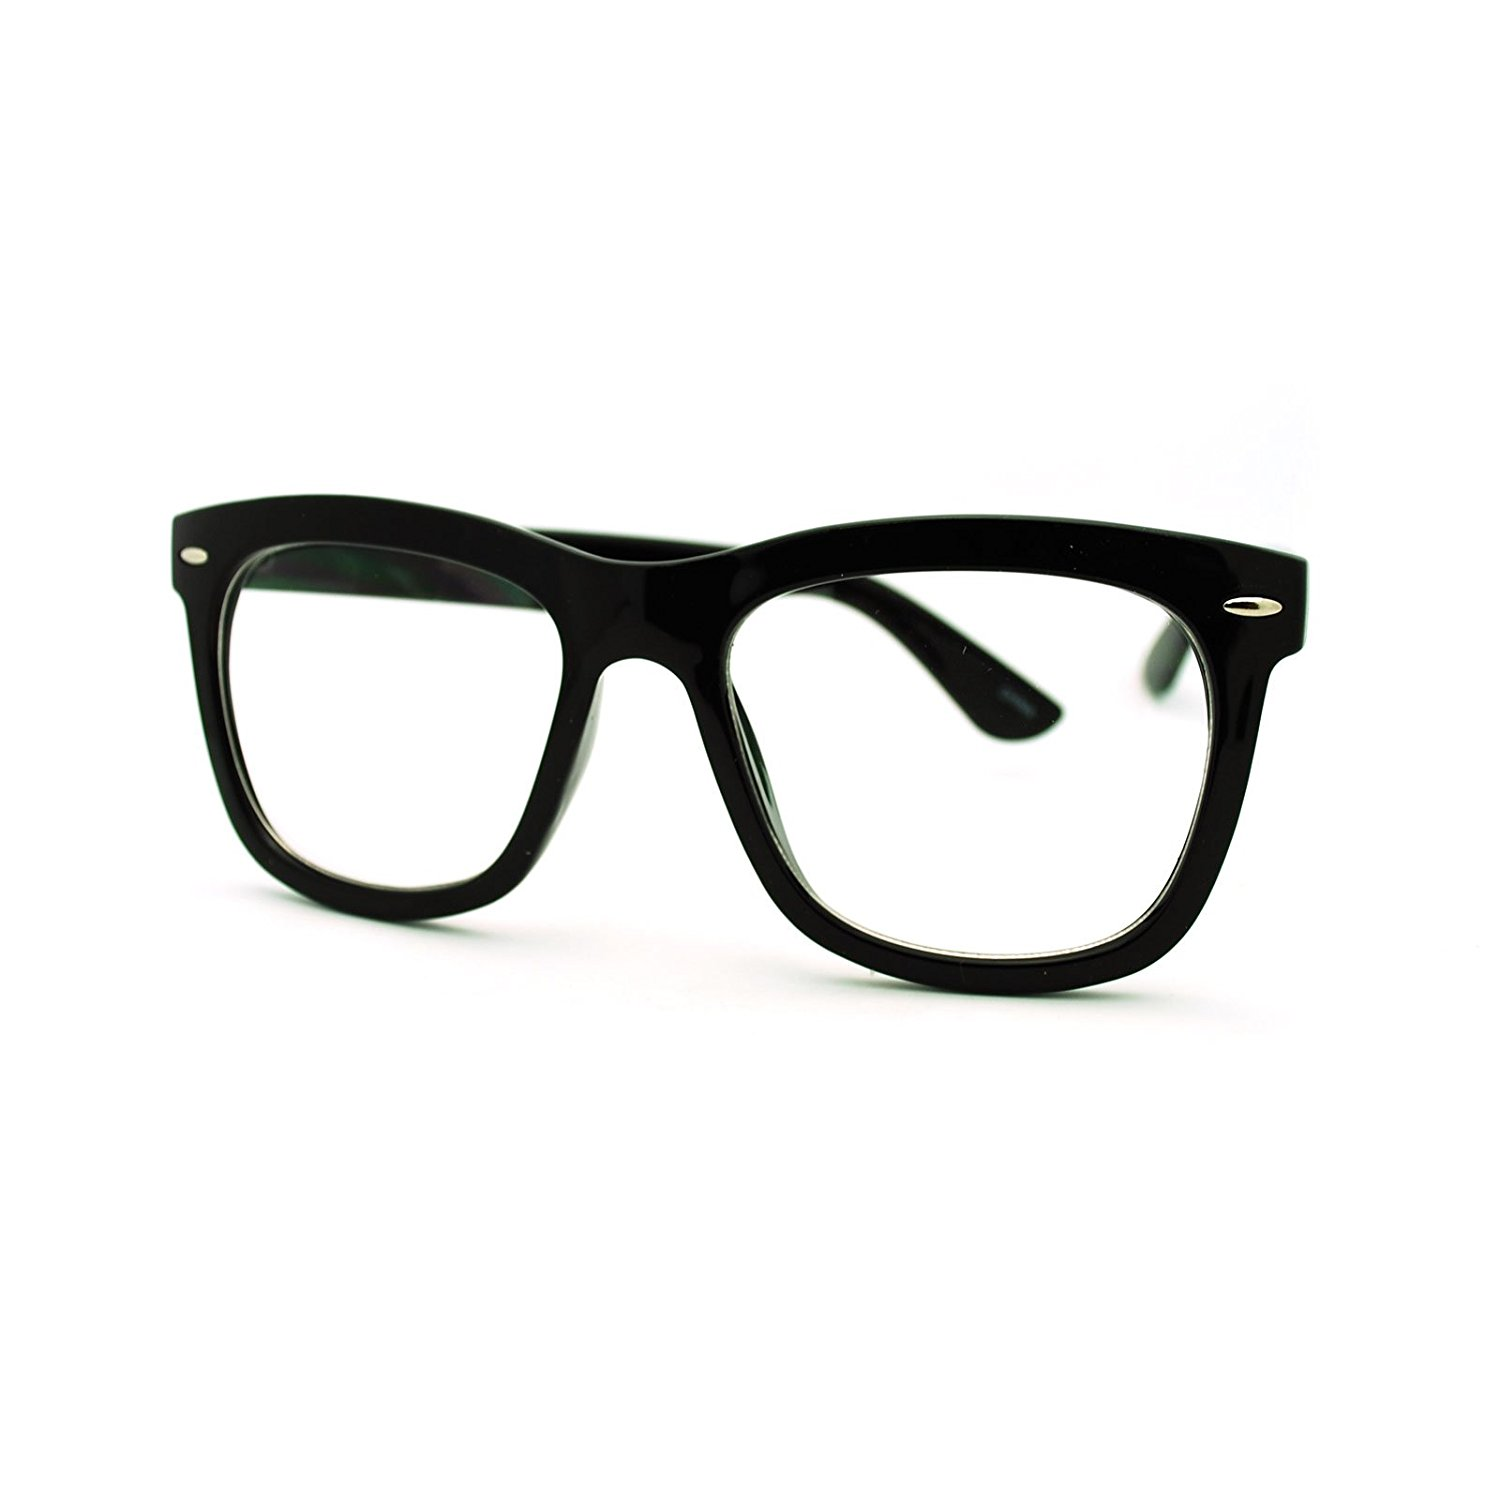 86ceff3fcc74 Get Quotations · Clear Lens Eyeglasses Oversized Thick Square Frame Nerdy  Glasses